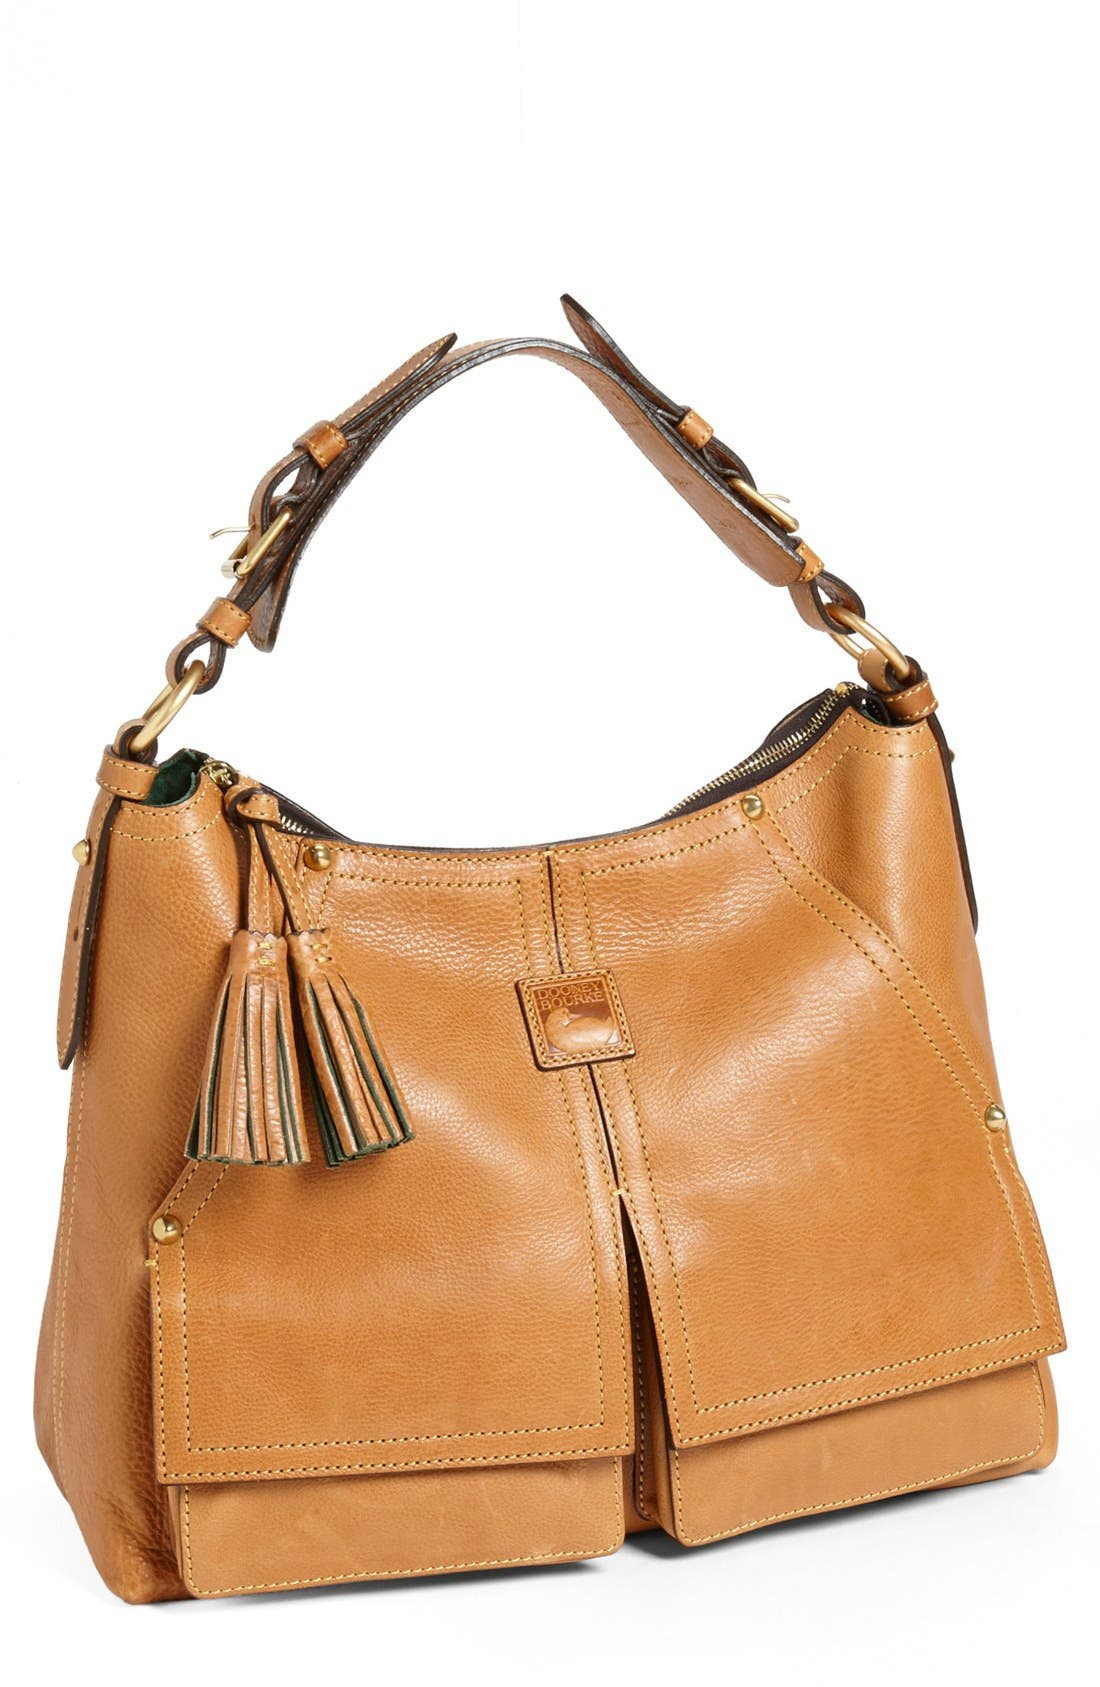 Main Image - Dooney & Bourke 'Kingston' Hobo